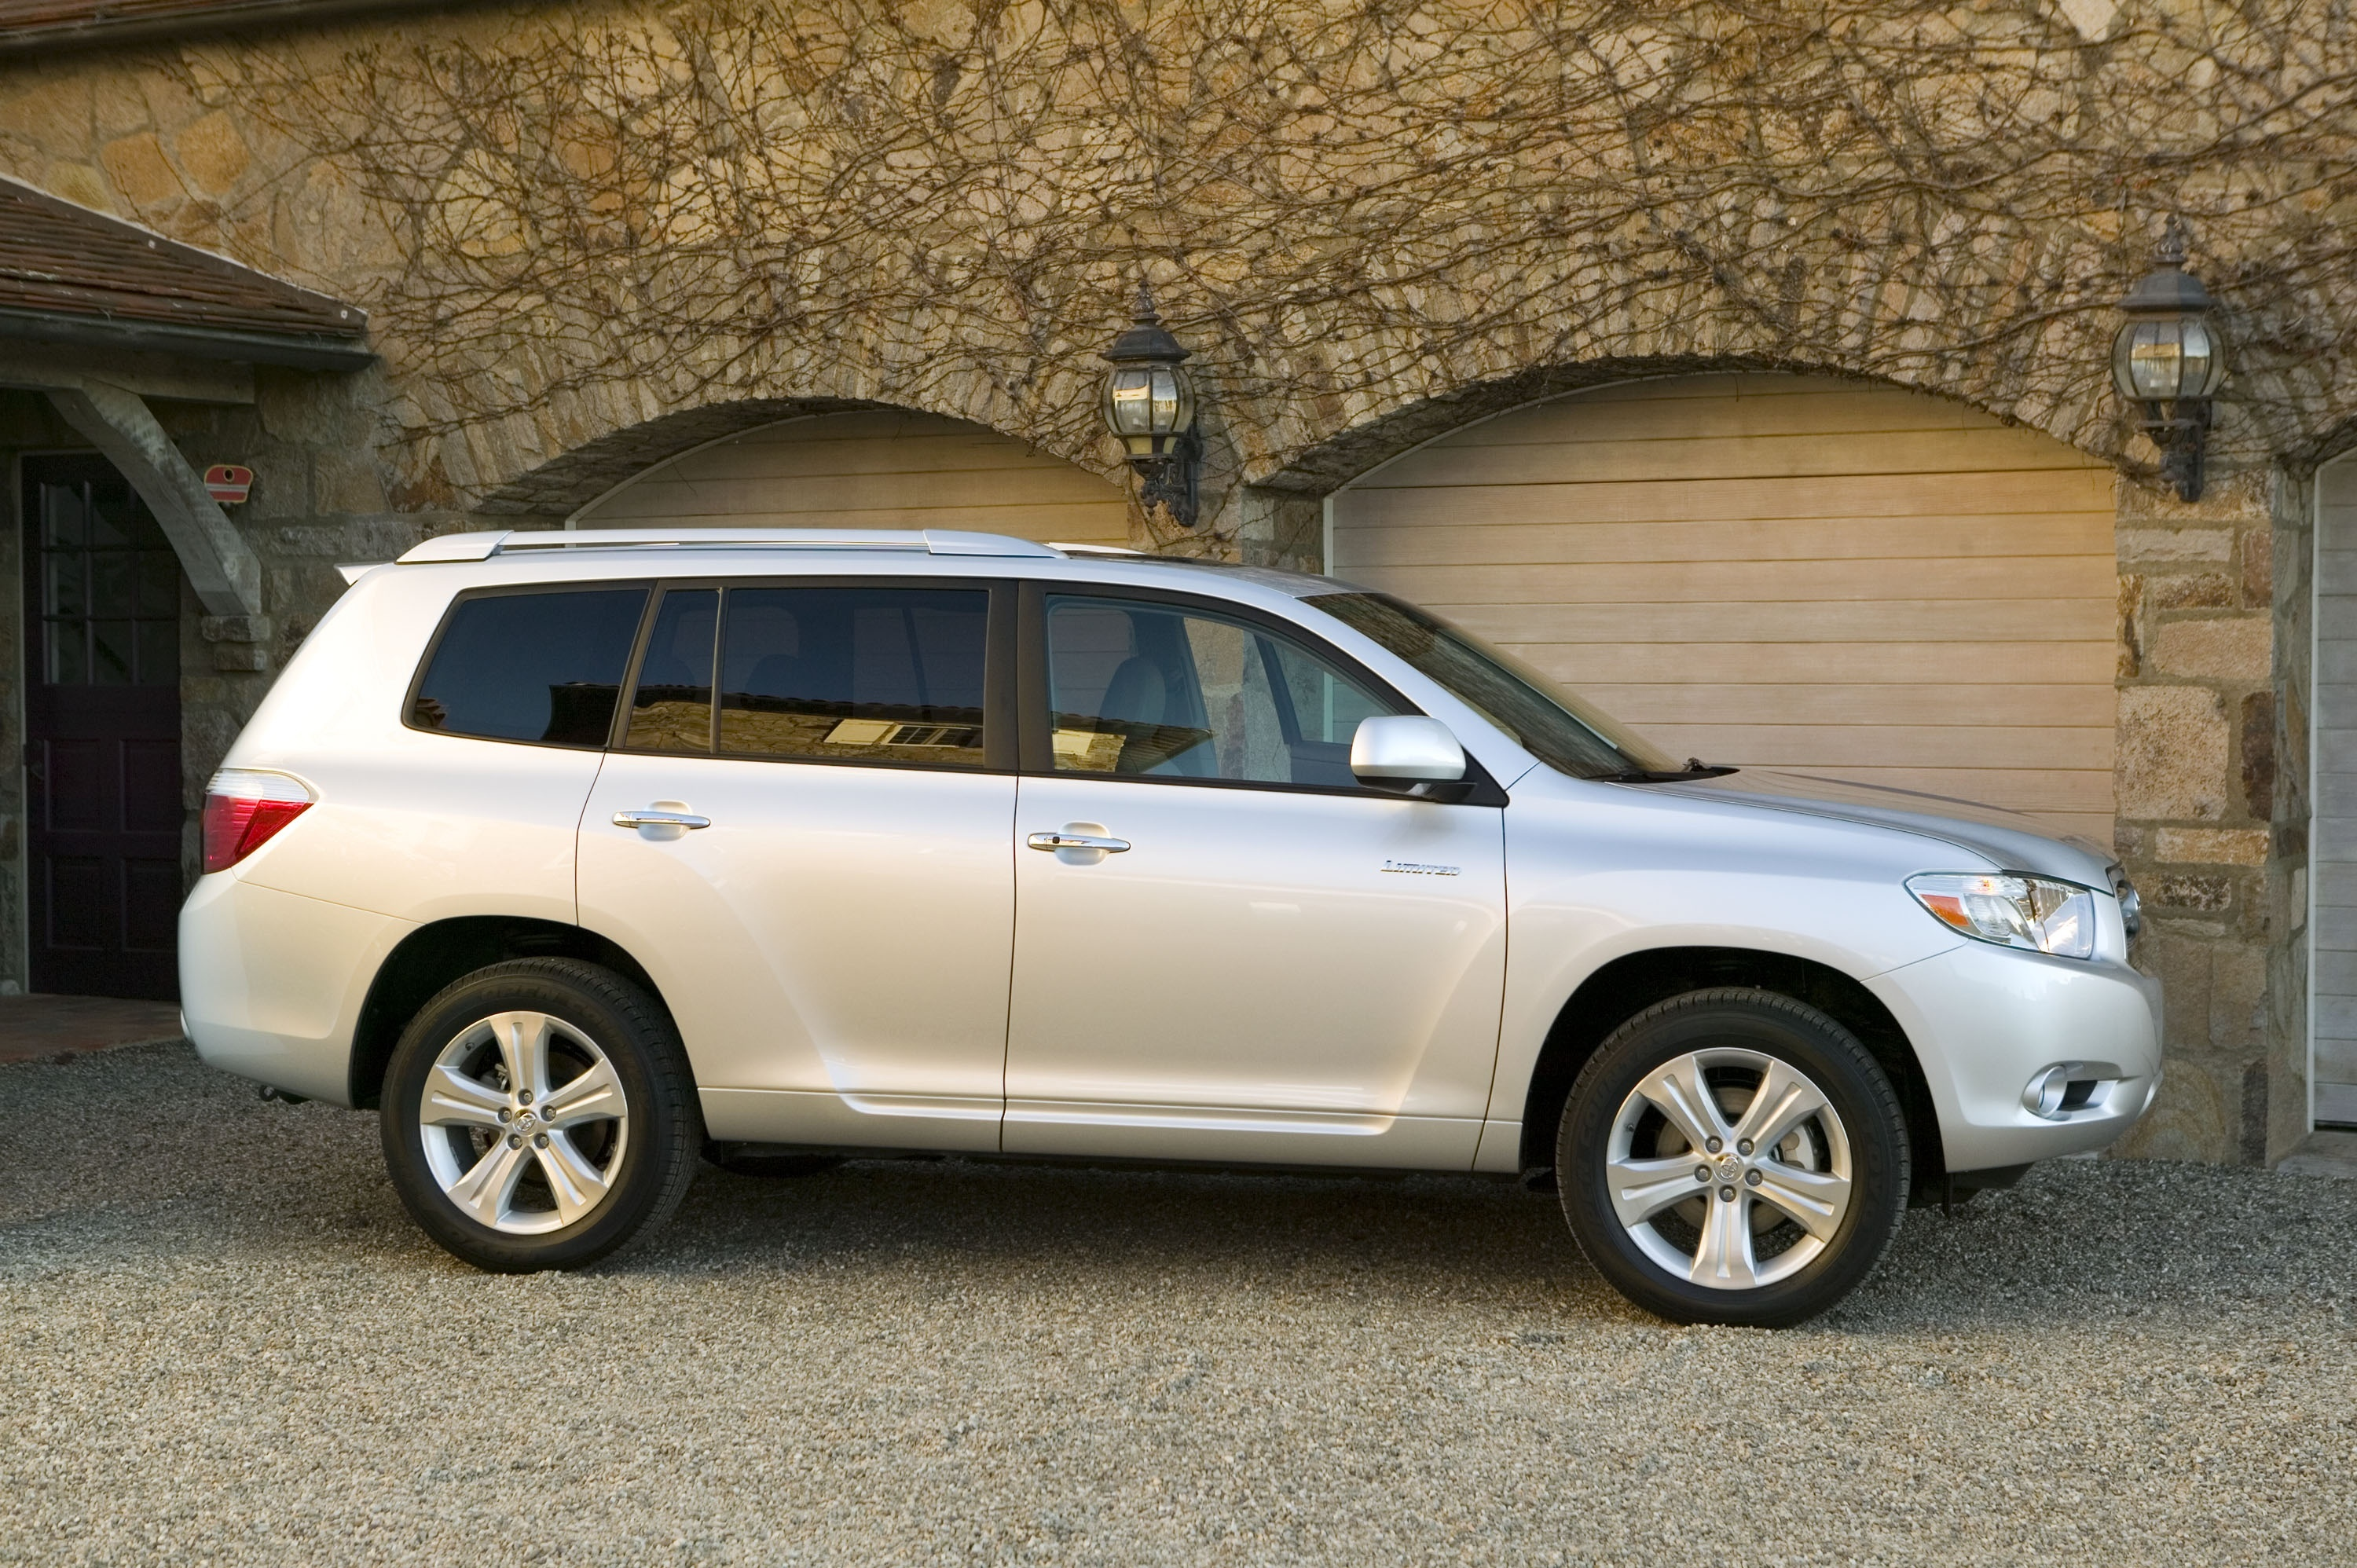 Toyota Highlander 2009 Picture 8762